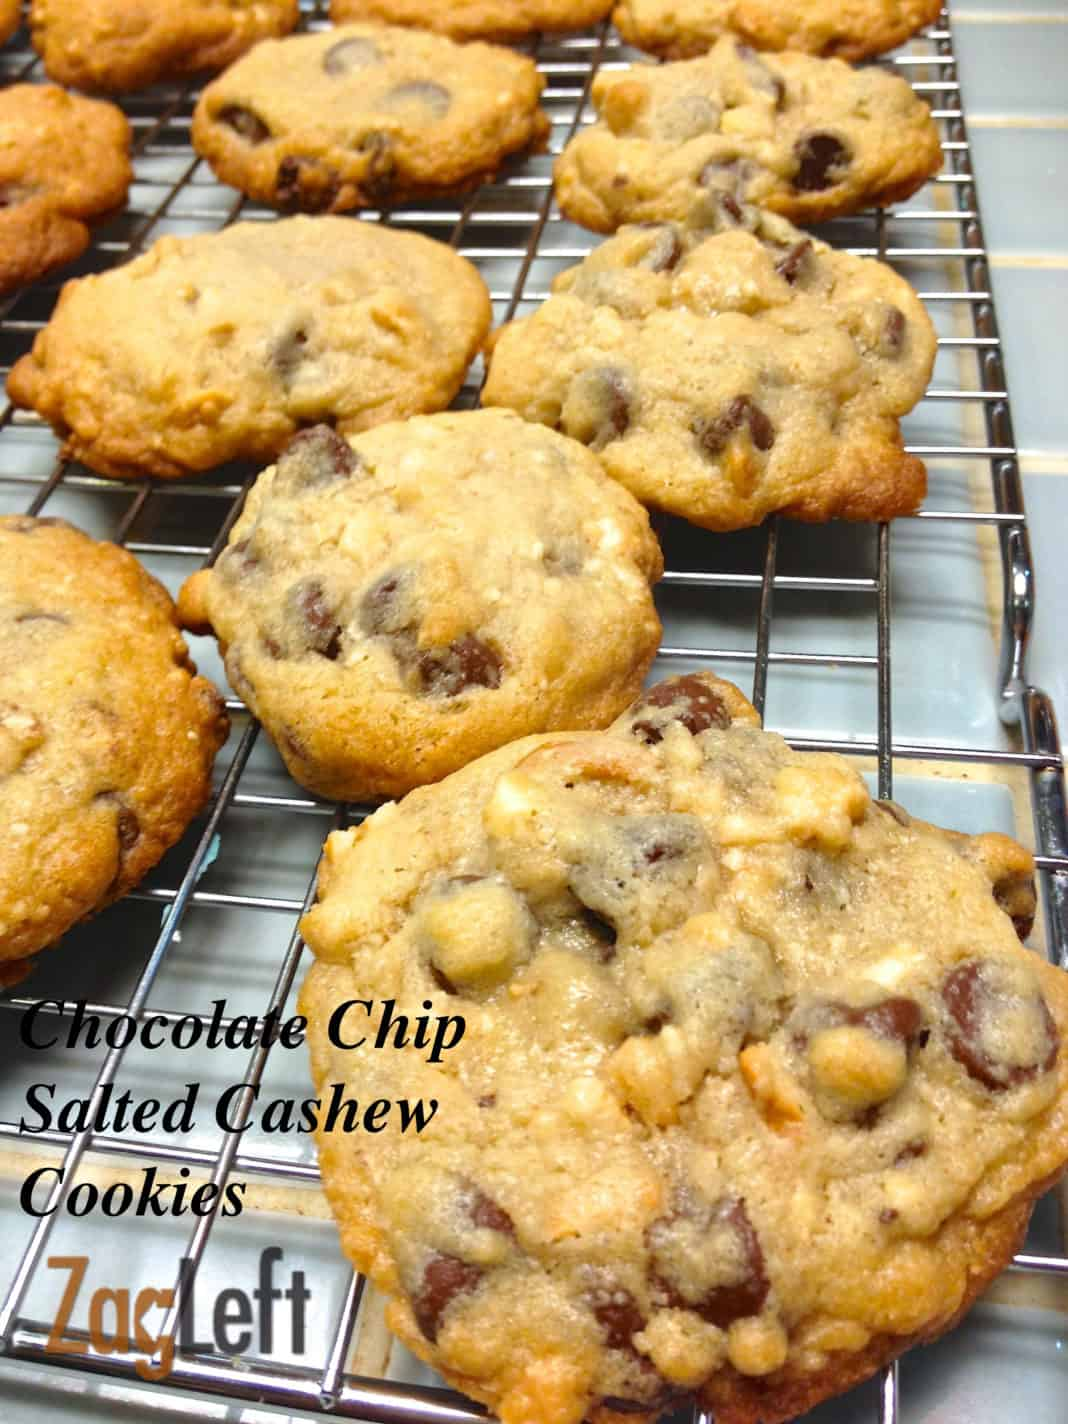 Easy to make Chocolate Chip Salted Cashew Cookies...